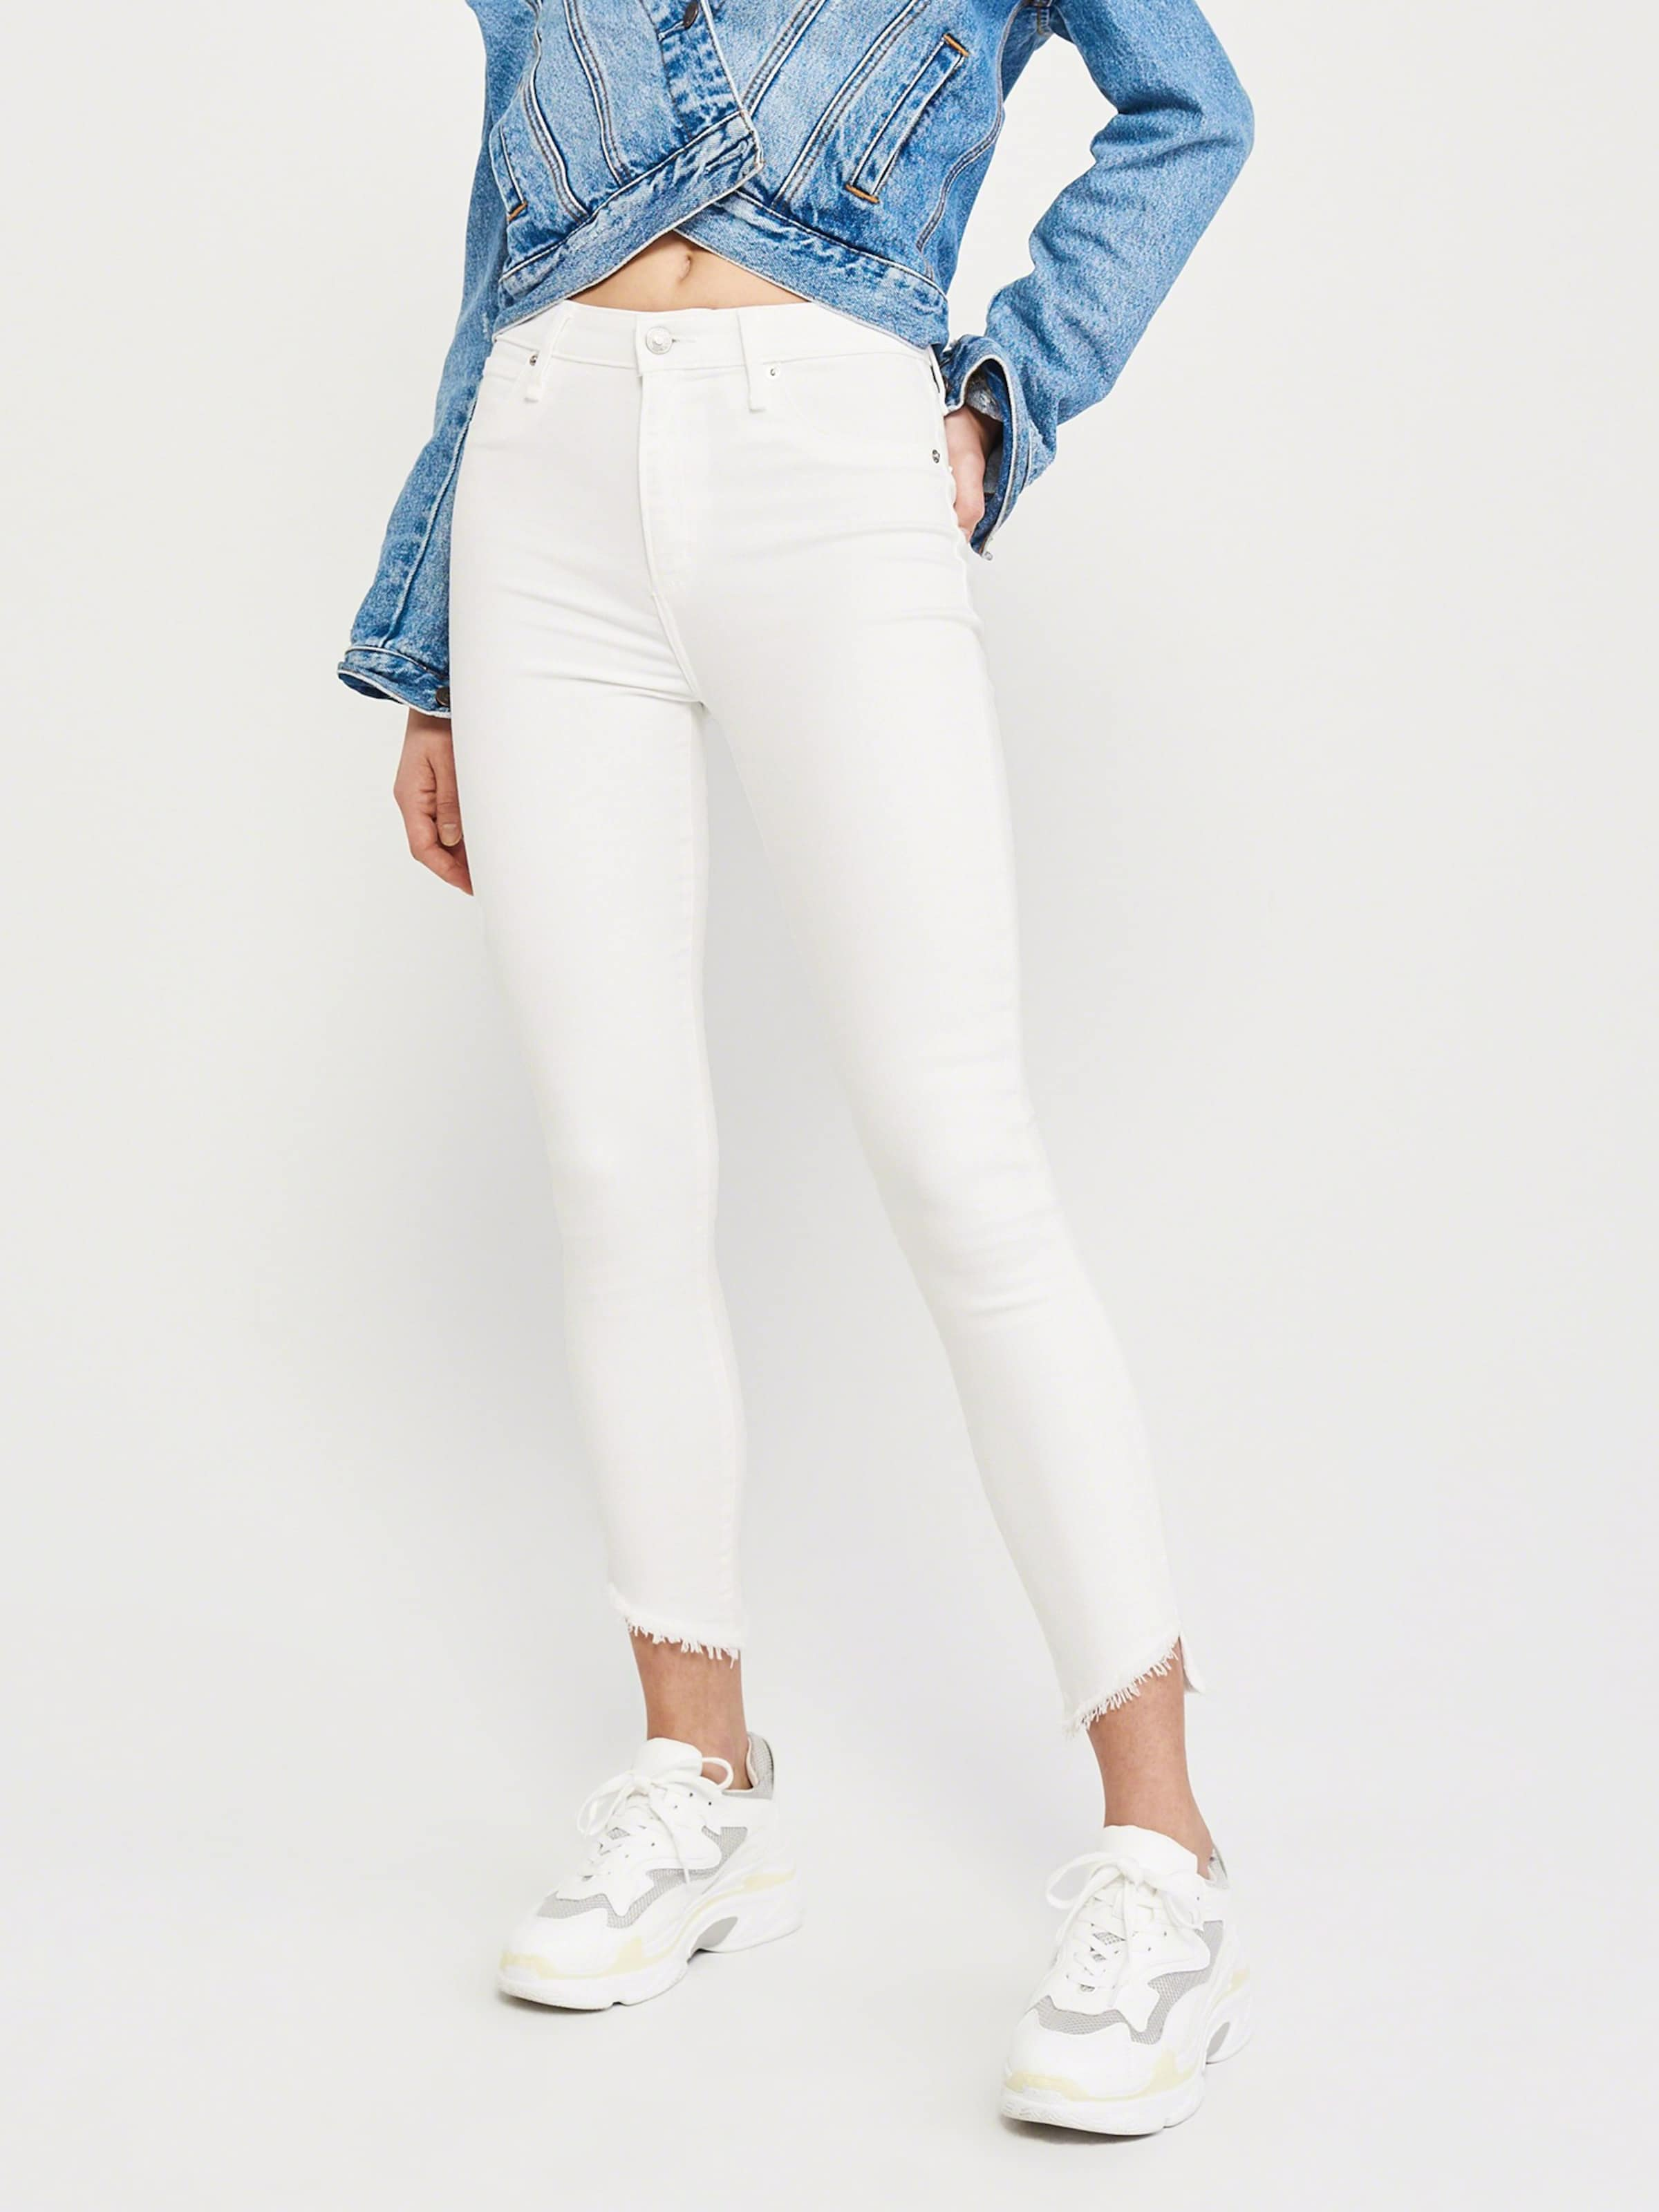 white Abercrombieamp; Hr Weiß 'ld17 Simone In Fitch Jeans Ankle' 1J3FTKcl